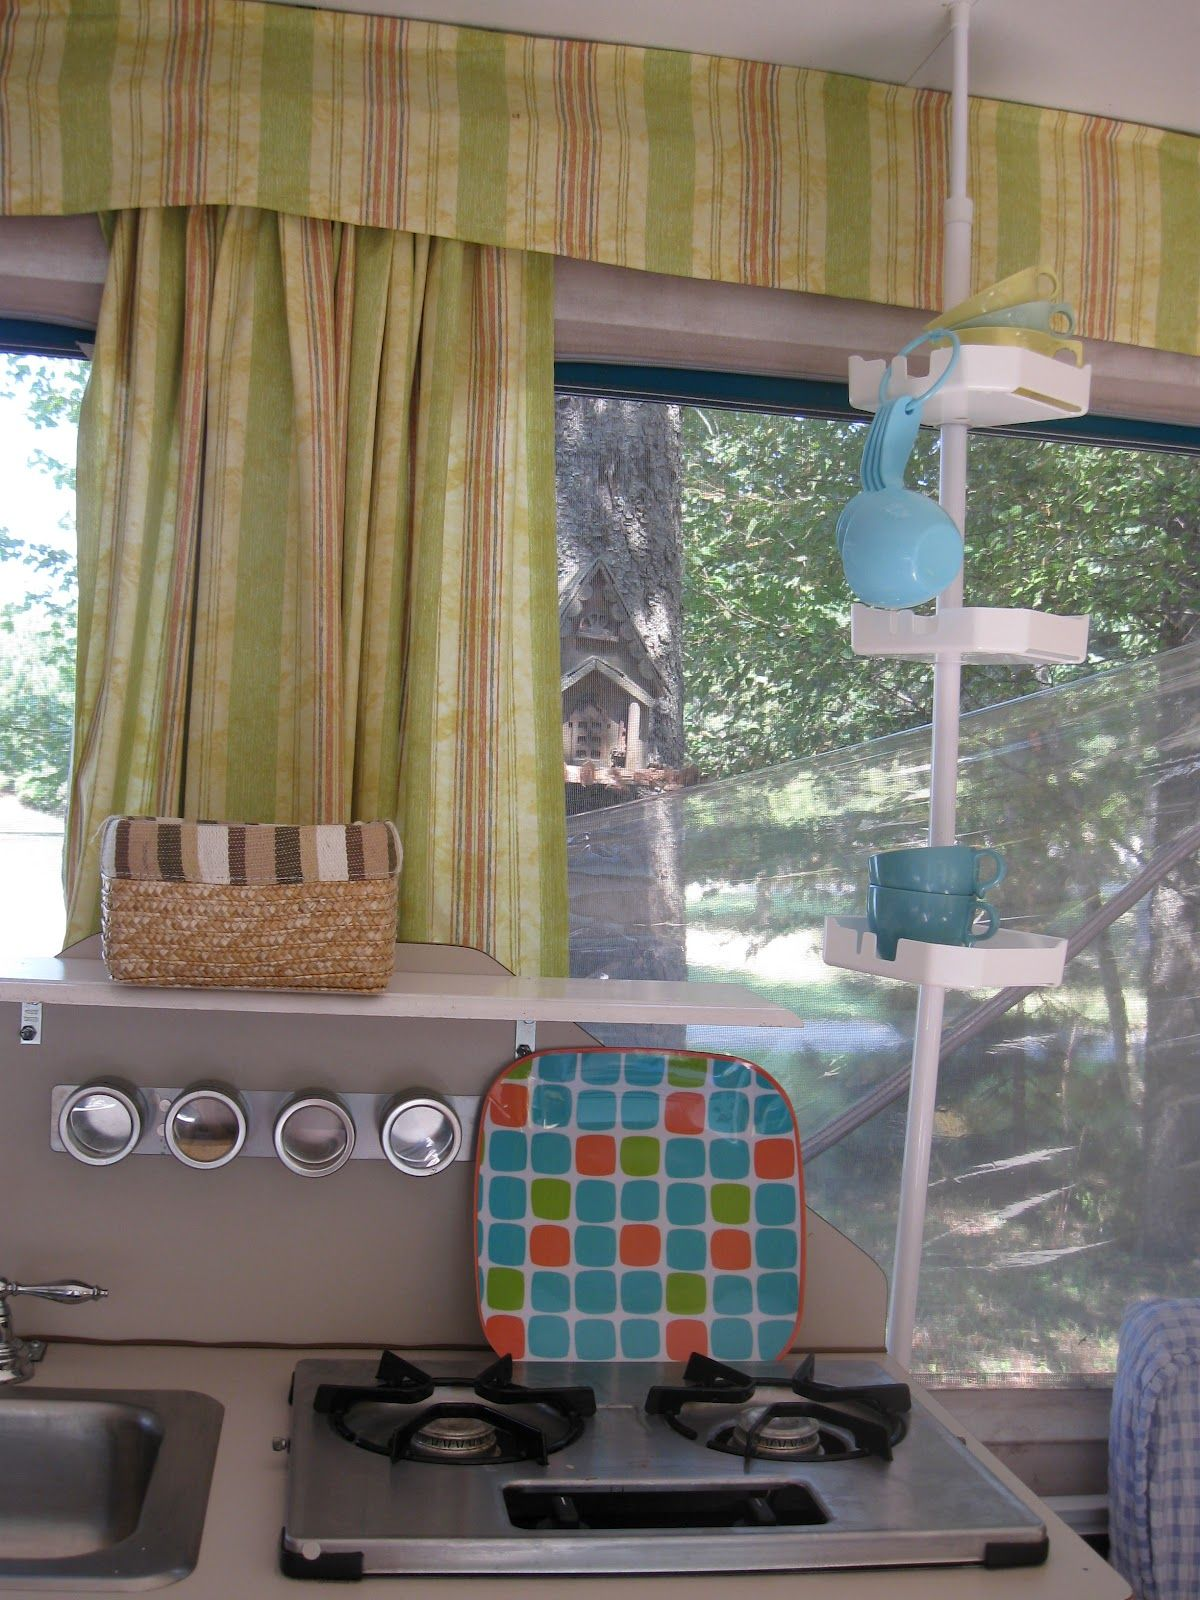 Shower Curtain Rod For Storage In Pop Up Camper Picture Borrowed